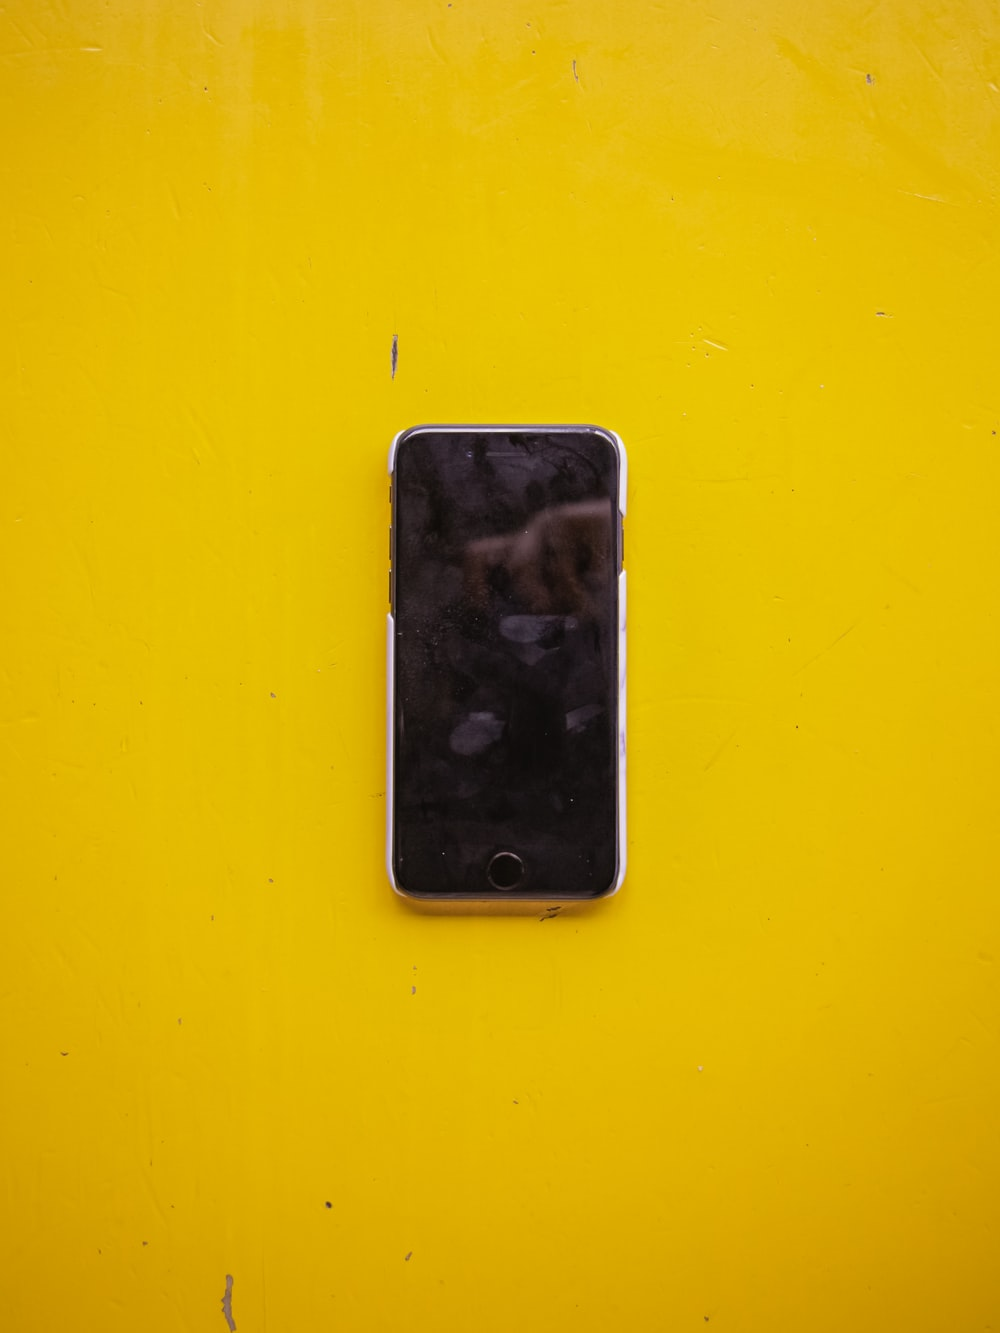 silver iPhone 5 on yellow surface